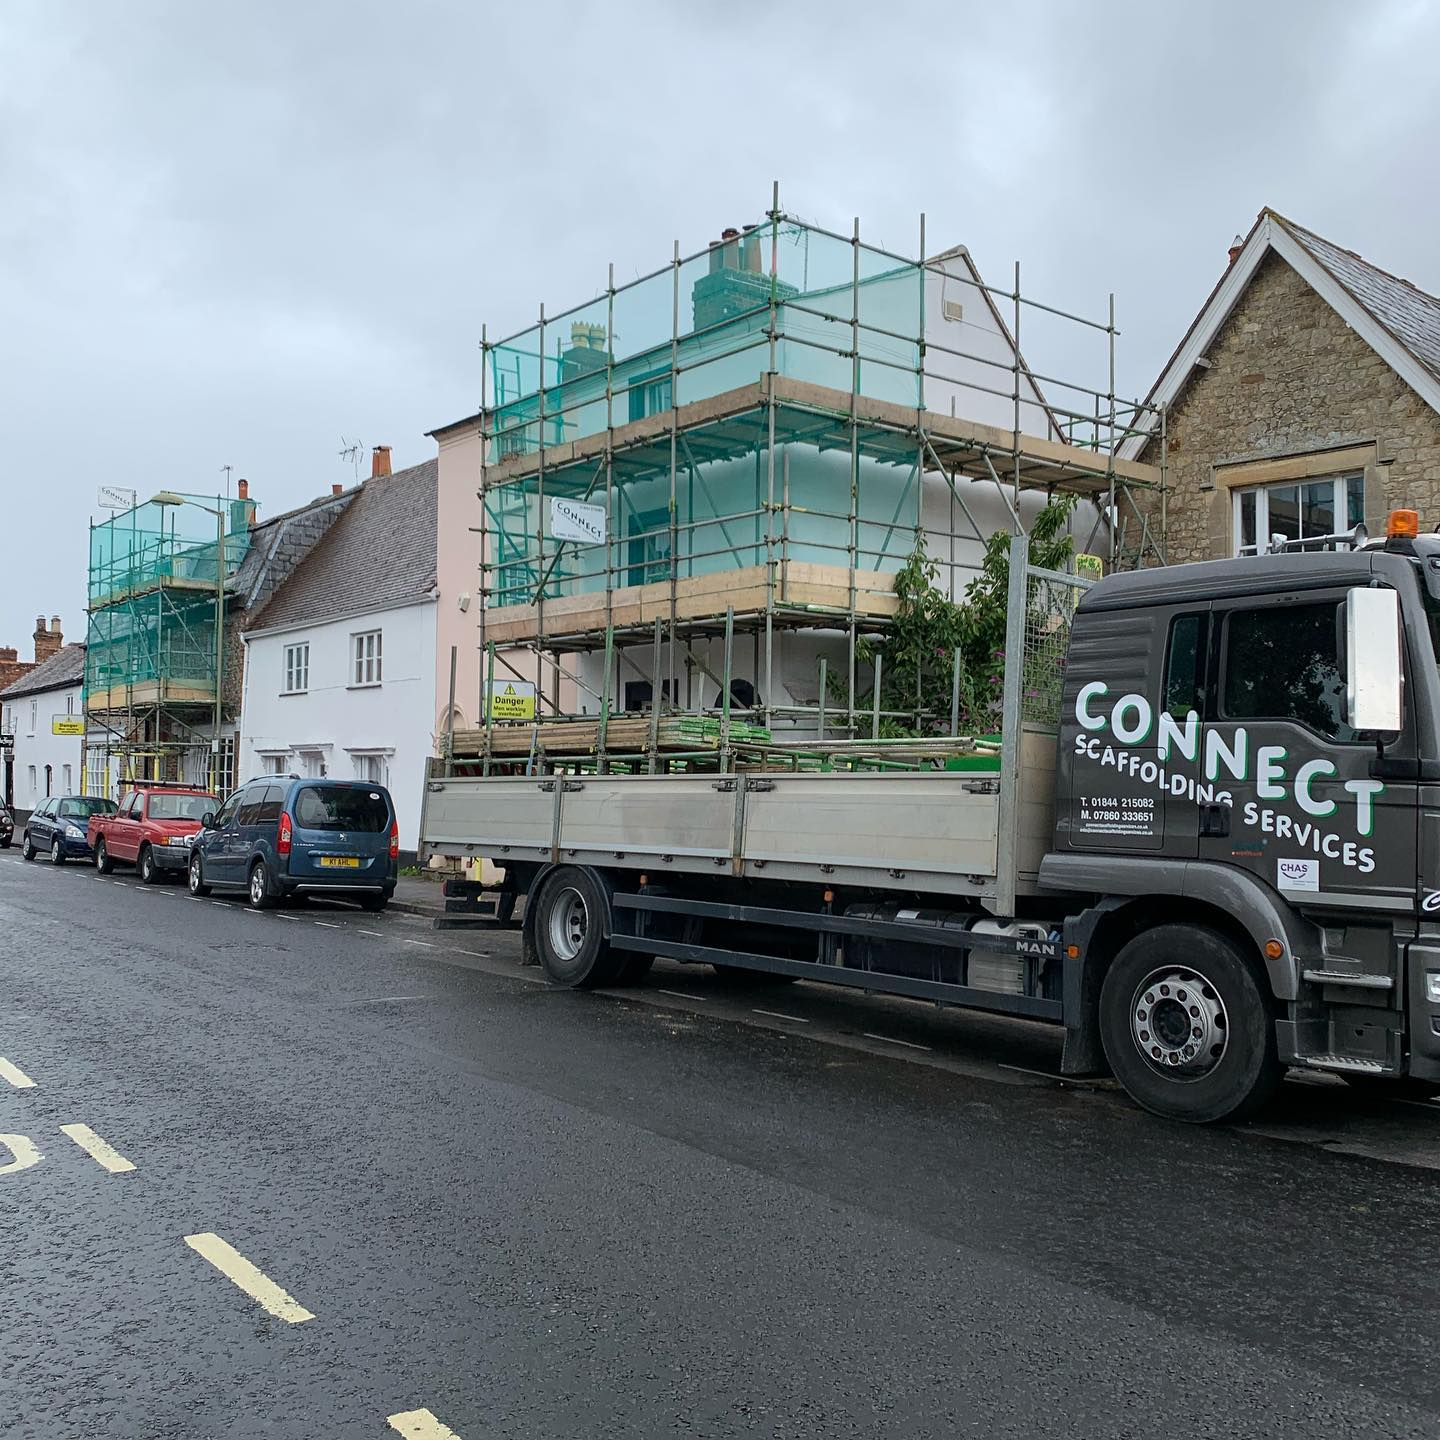 Thame #scaffolding #scaffold #scaffolder #connect #connectscaffolding #scafflife #construction #industry #instagood